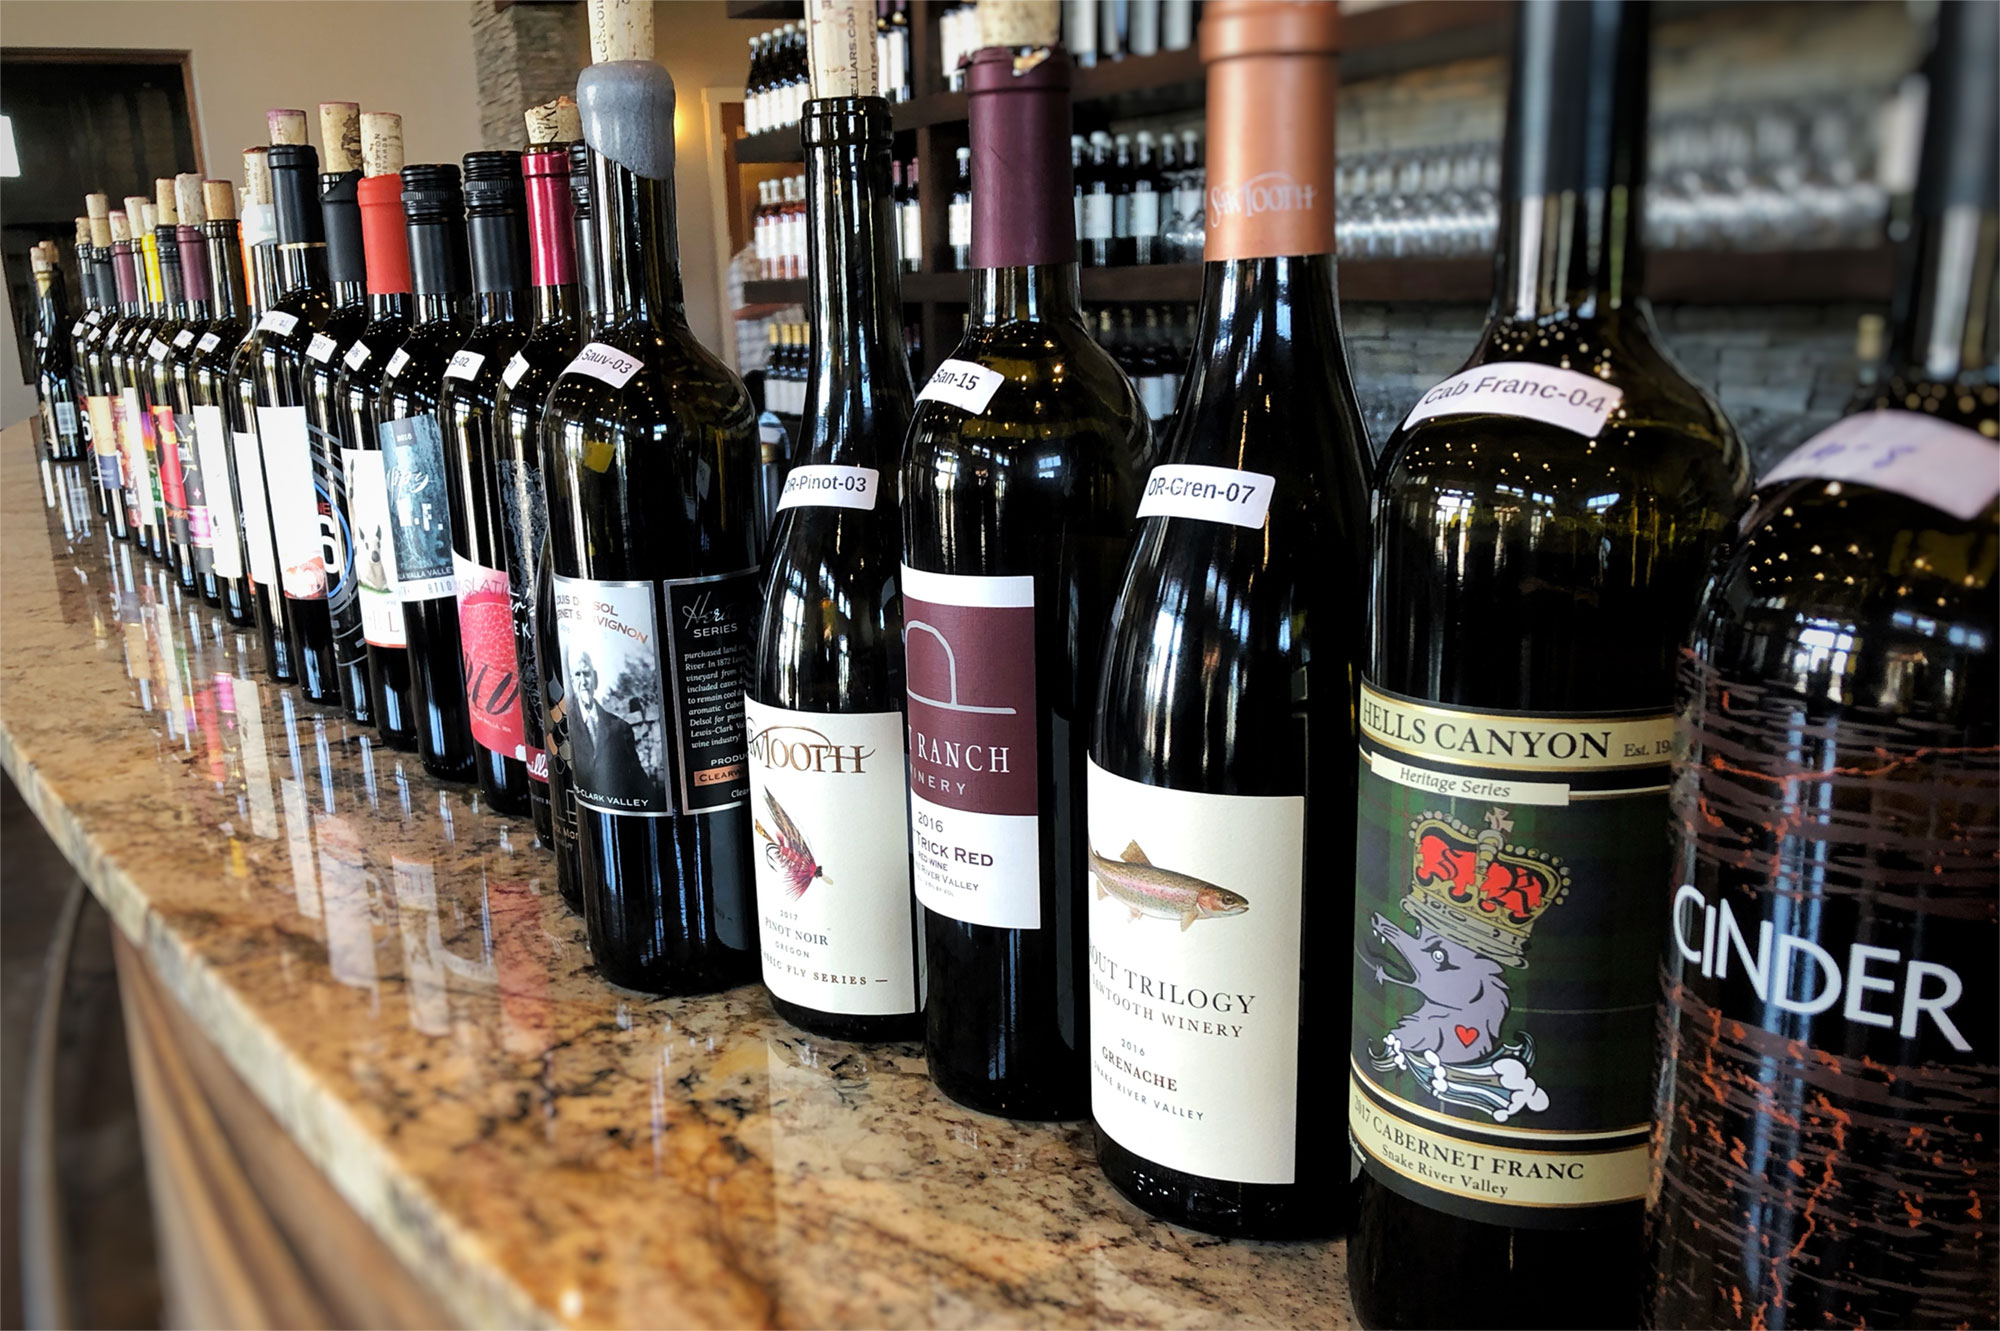 Idaho Wine submissions lined up